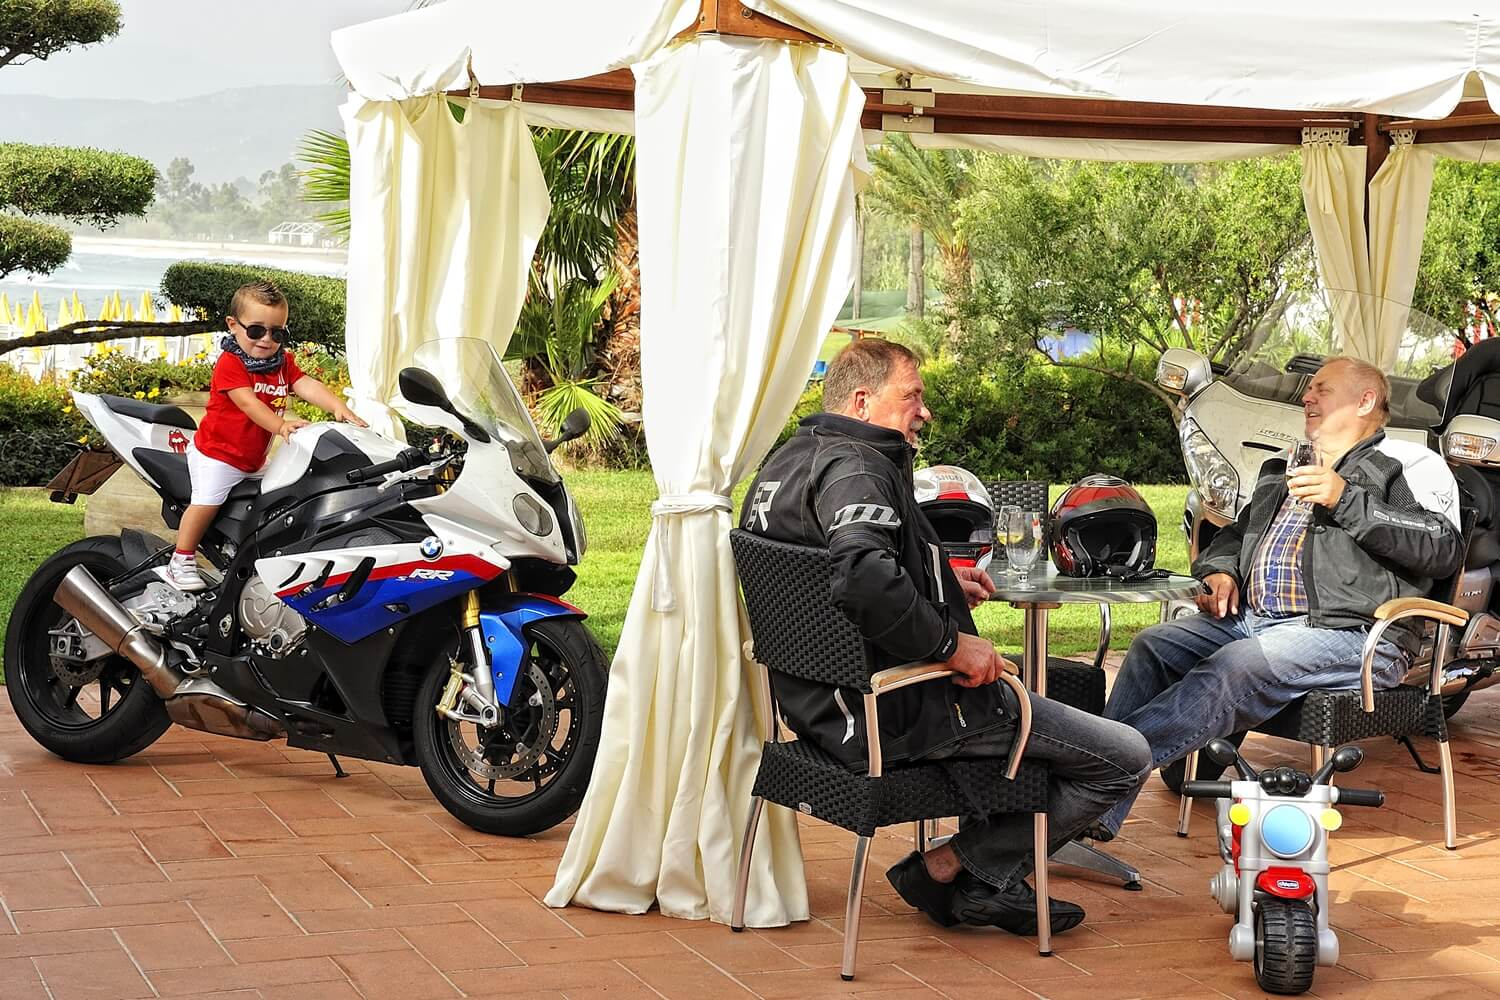 Best biker hotels sardinia with free garage for motorbikes